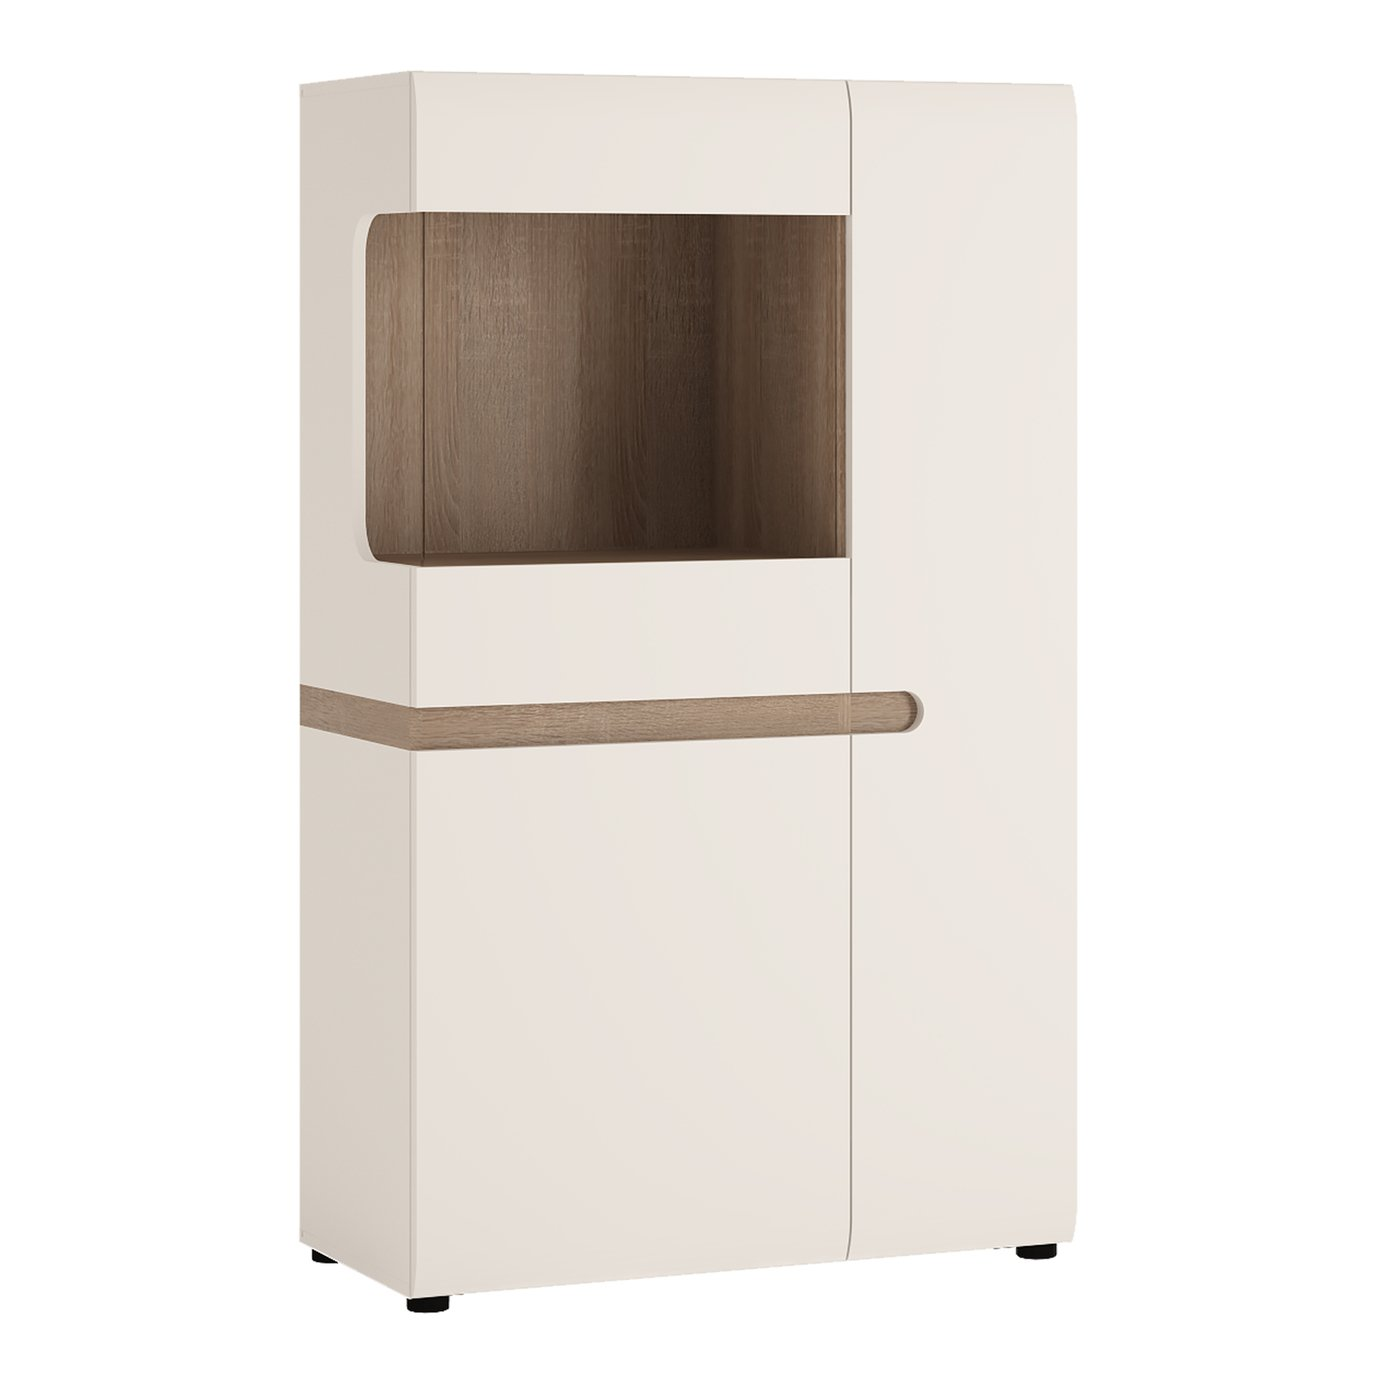 Exton 2 Door Low Display Cabinet - White Gloss